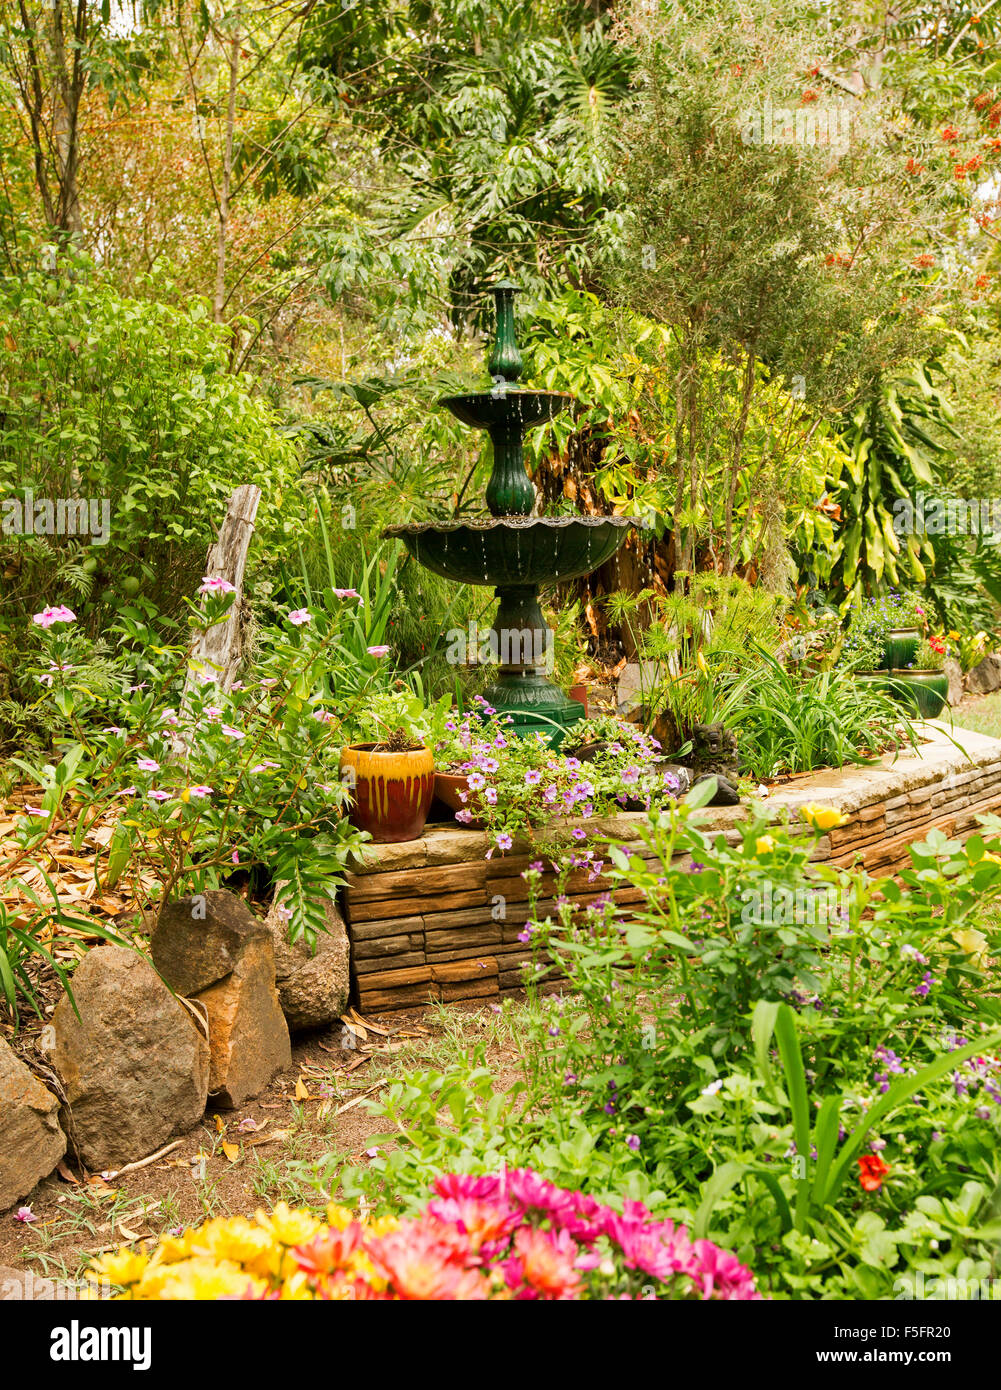 Decorative Garden Feature With Low Stone Wall, Ornate Fountain U0026 Plants In  Containers, Hemmed By Shrubs, Climbers U0026 Tall Trees